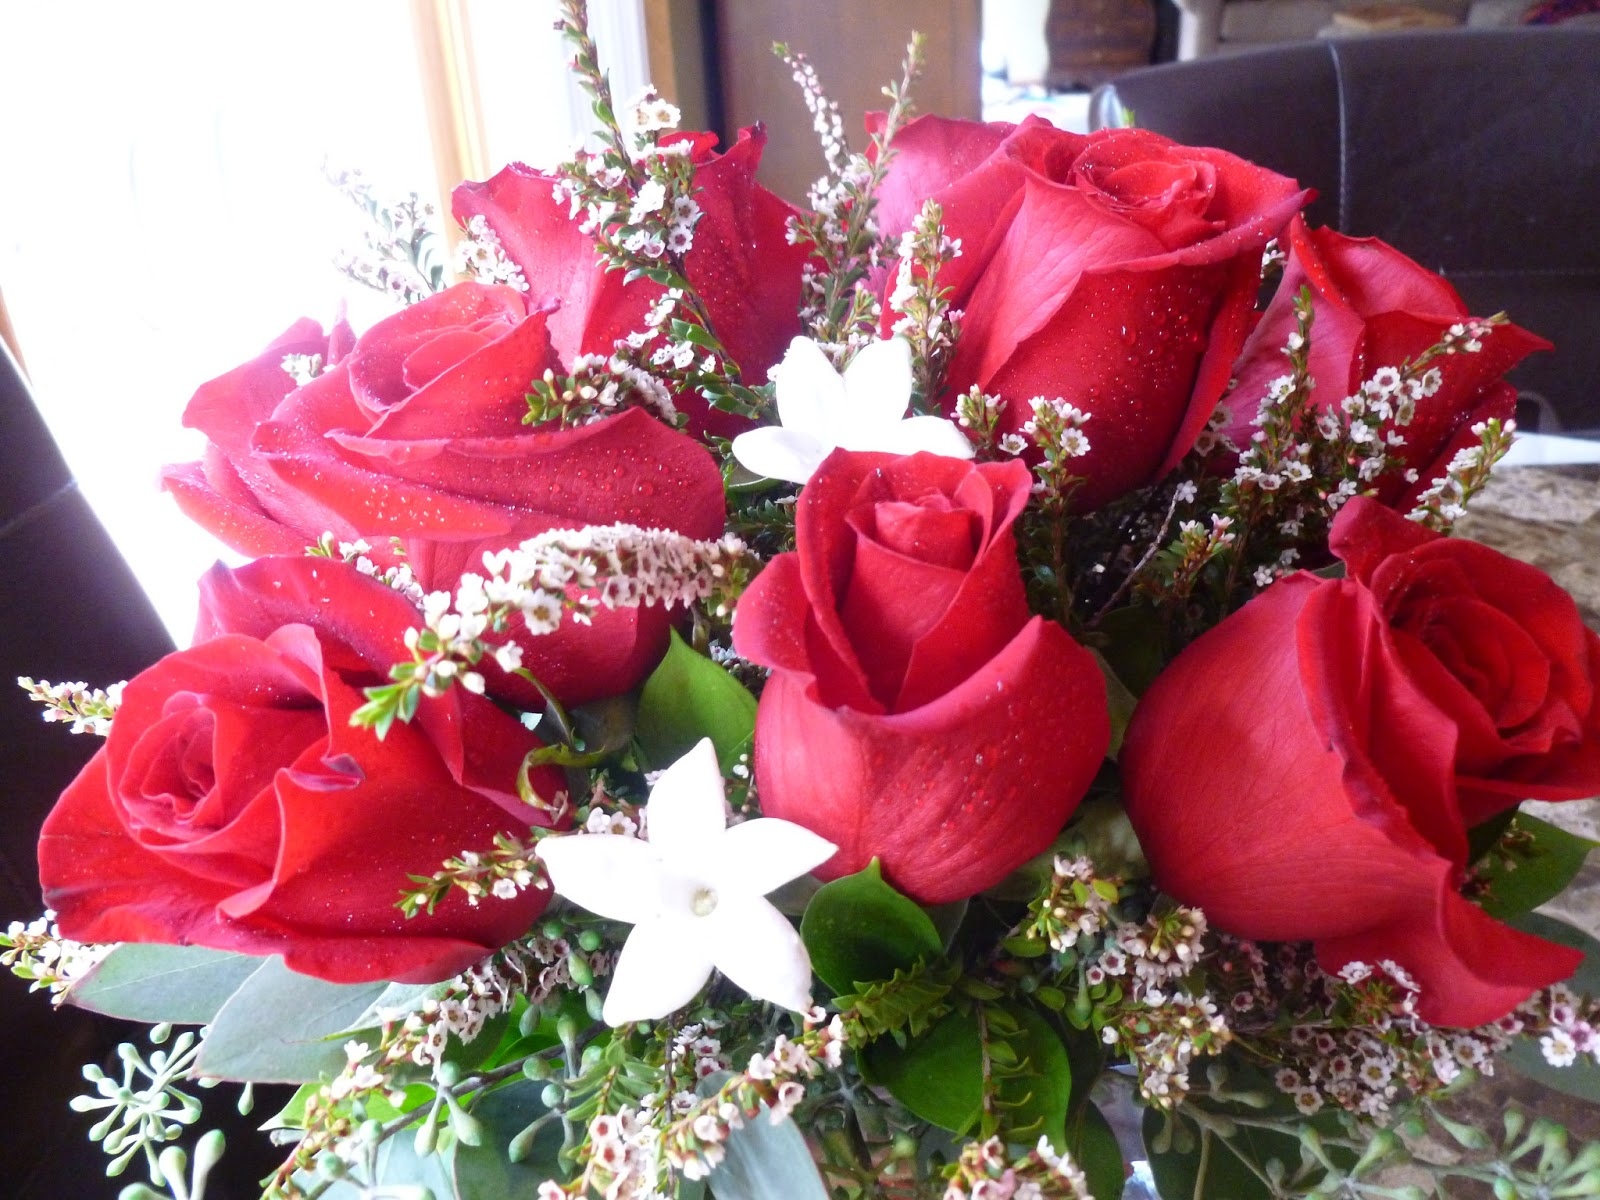 Mommy plus two: my romantic anniversary gift